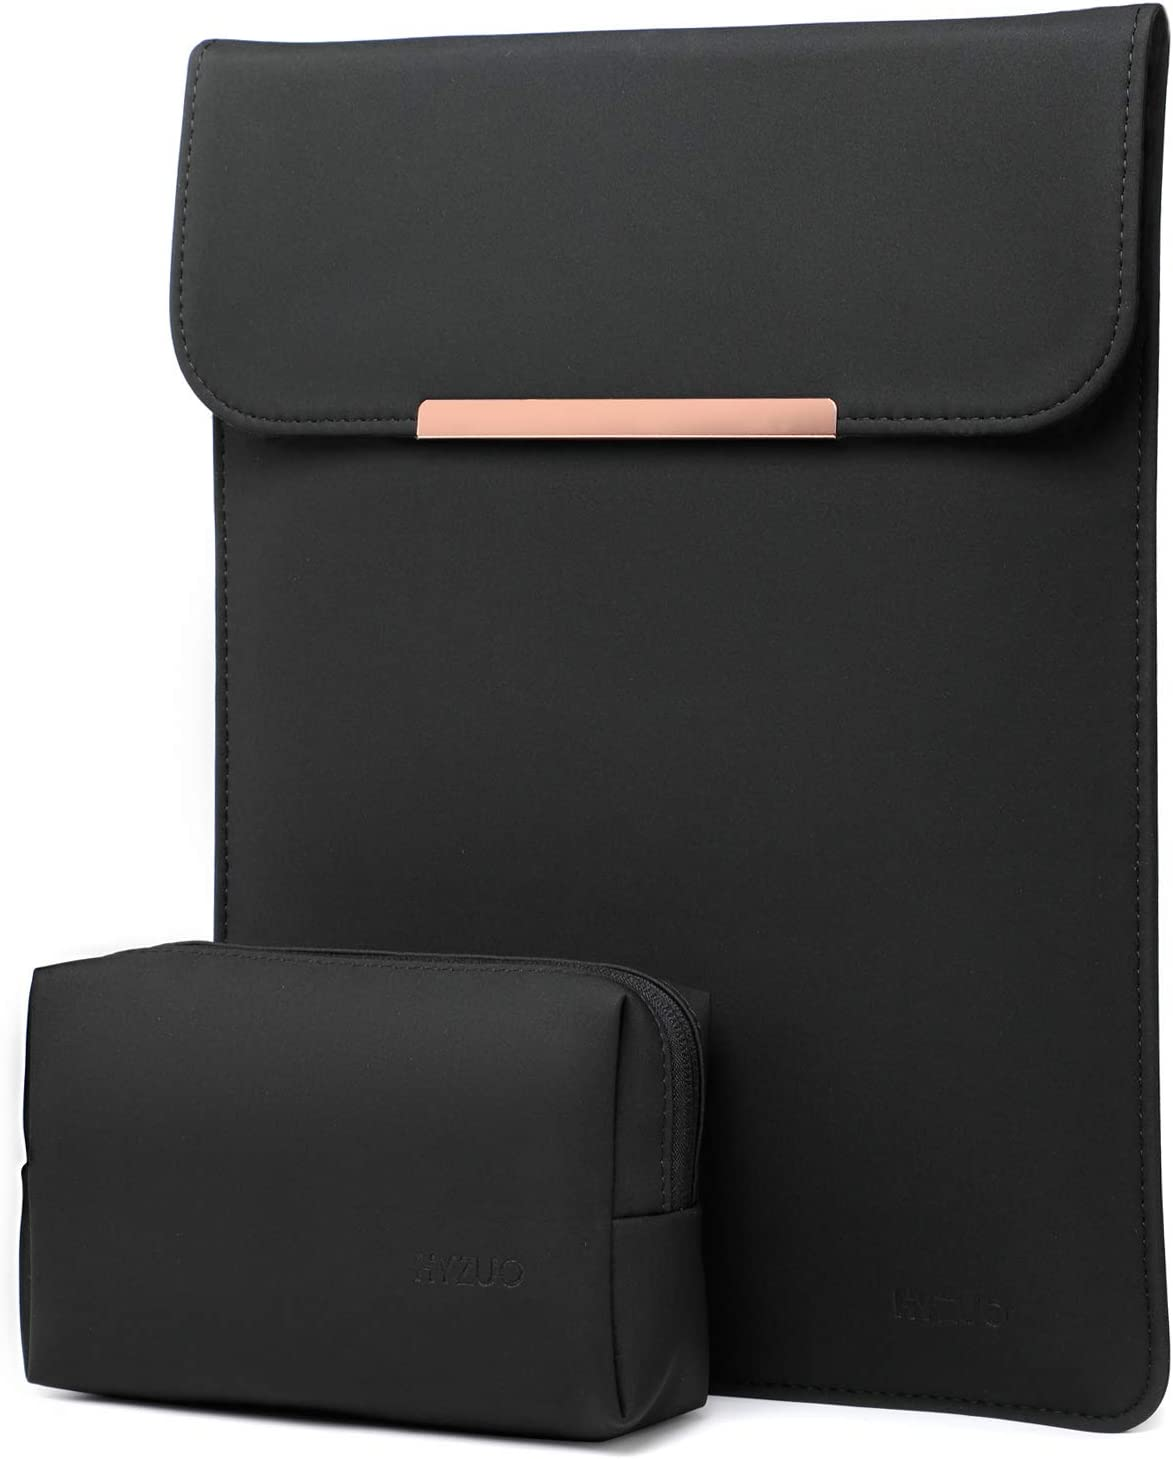 HYZUO 15-16 Inch Laptop Sleeve Case Compatible with 2019 MacBook Pro 16 A2141/ Surface Laptop 3 15 Inch/Dell XPS 15/2012-2015 Old MacBook Pro Retina 15 A1398, Black